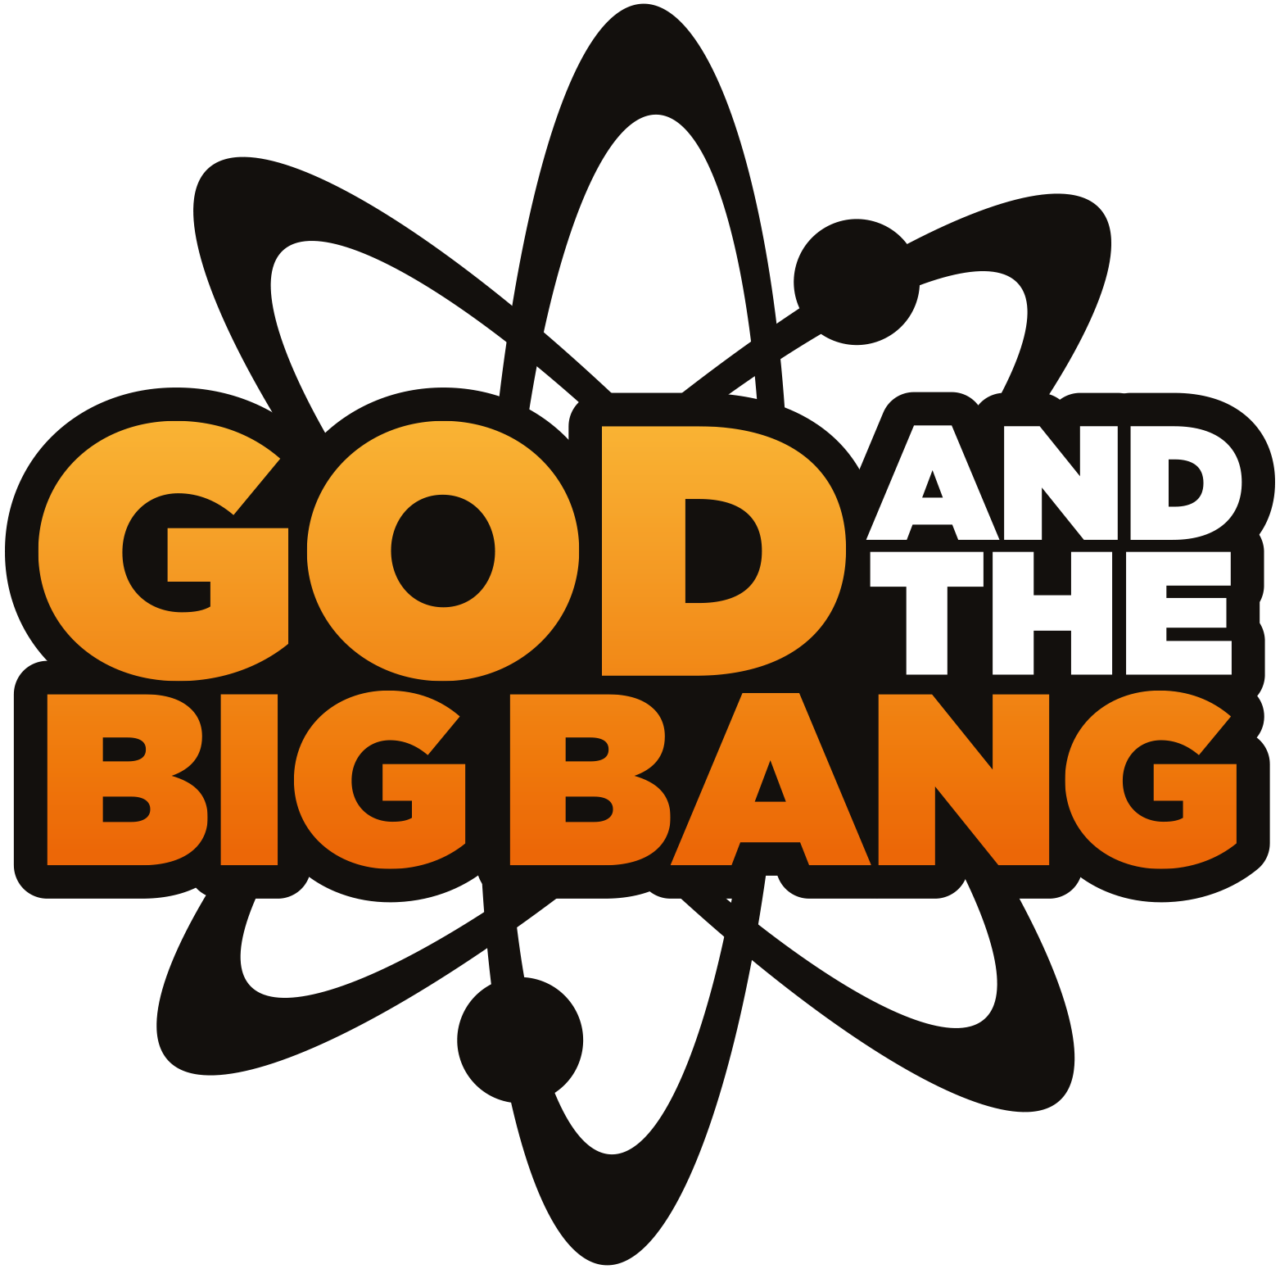 Faith clipart changes everything god. The big bang southwark